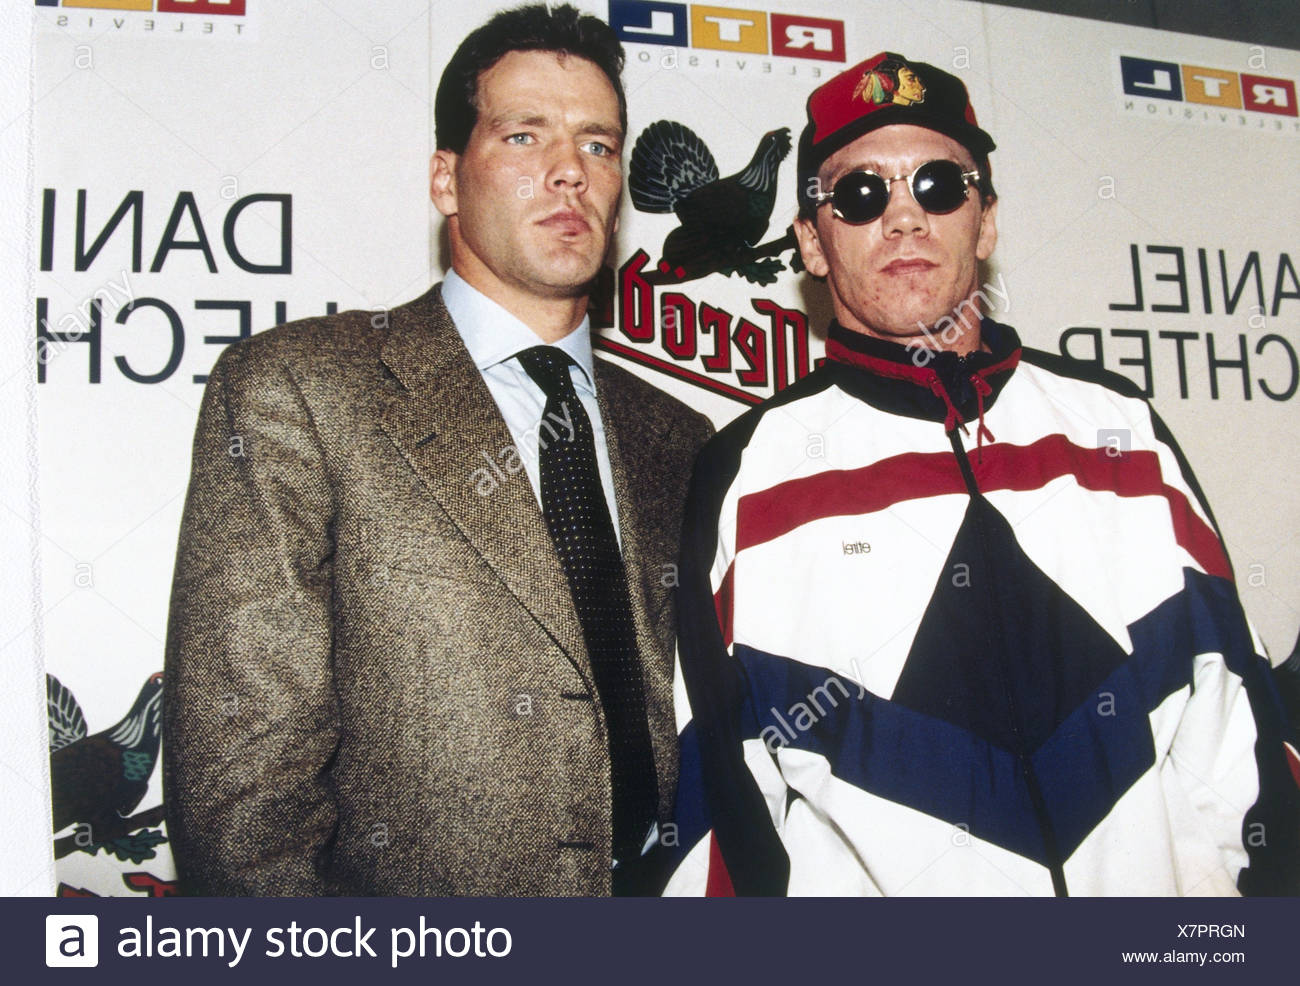 Maske, Henry, * 6.1.1964, German boxer, light heavyweight, with rival Graciano Rocchigiani, half length, 11.10.1995, , Additional-Rights-Clearances-NA - Stock Image